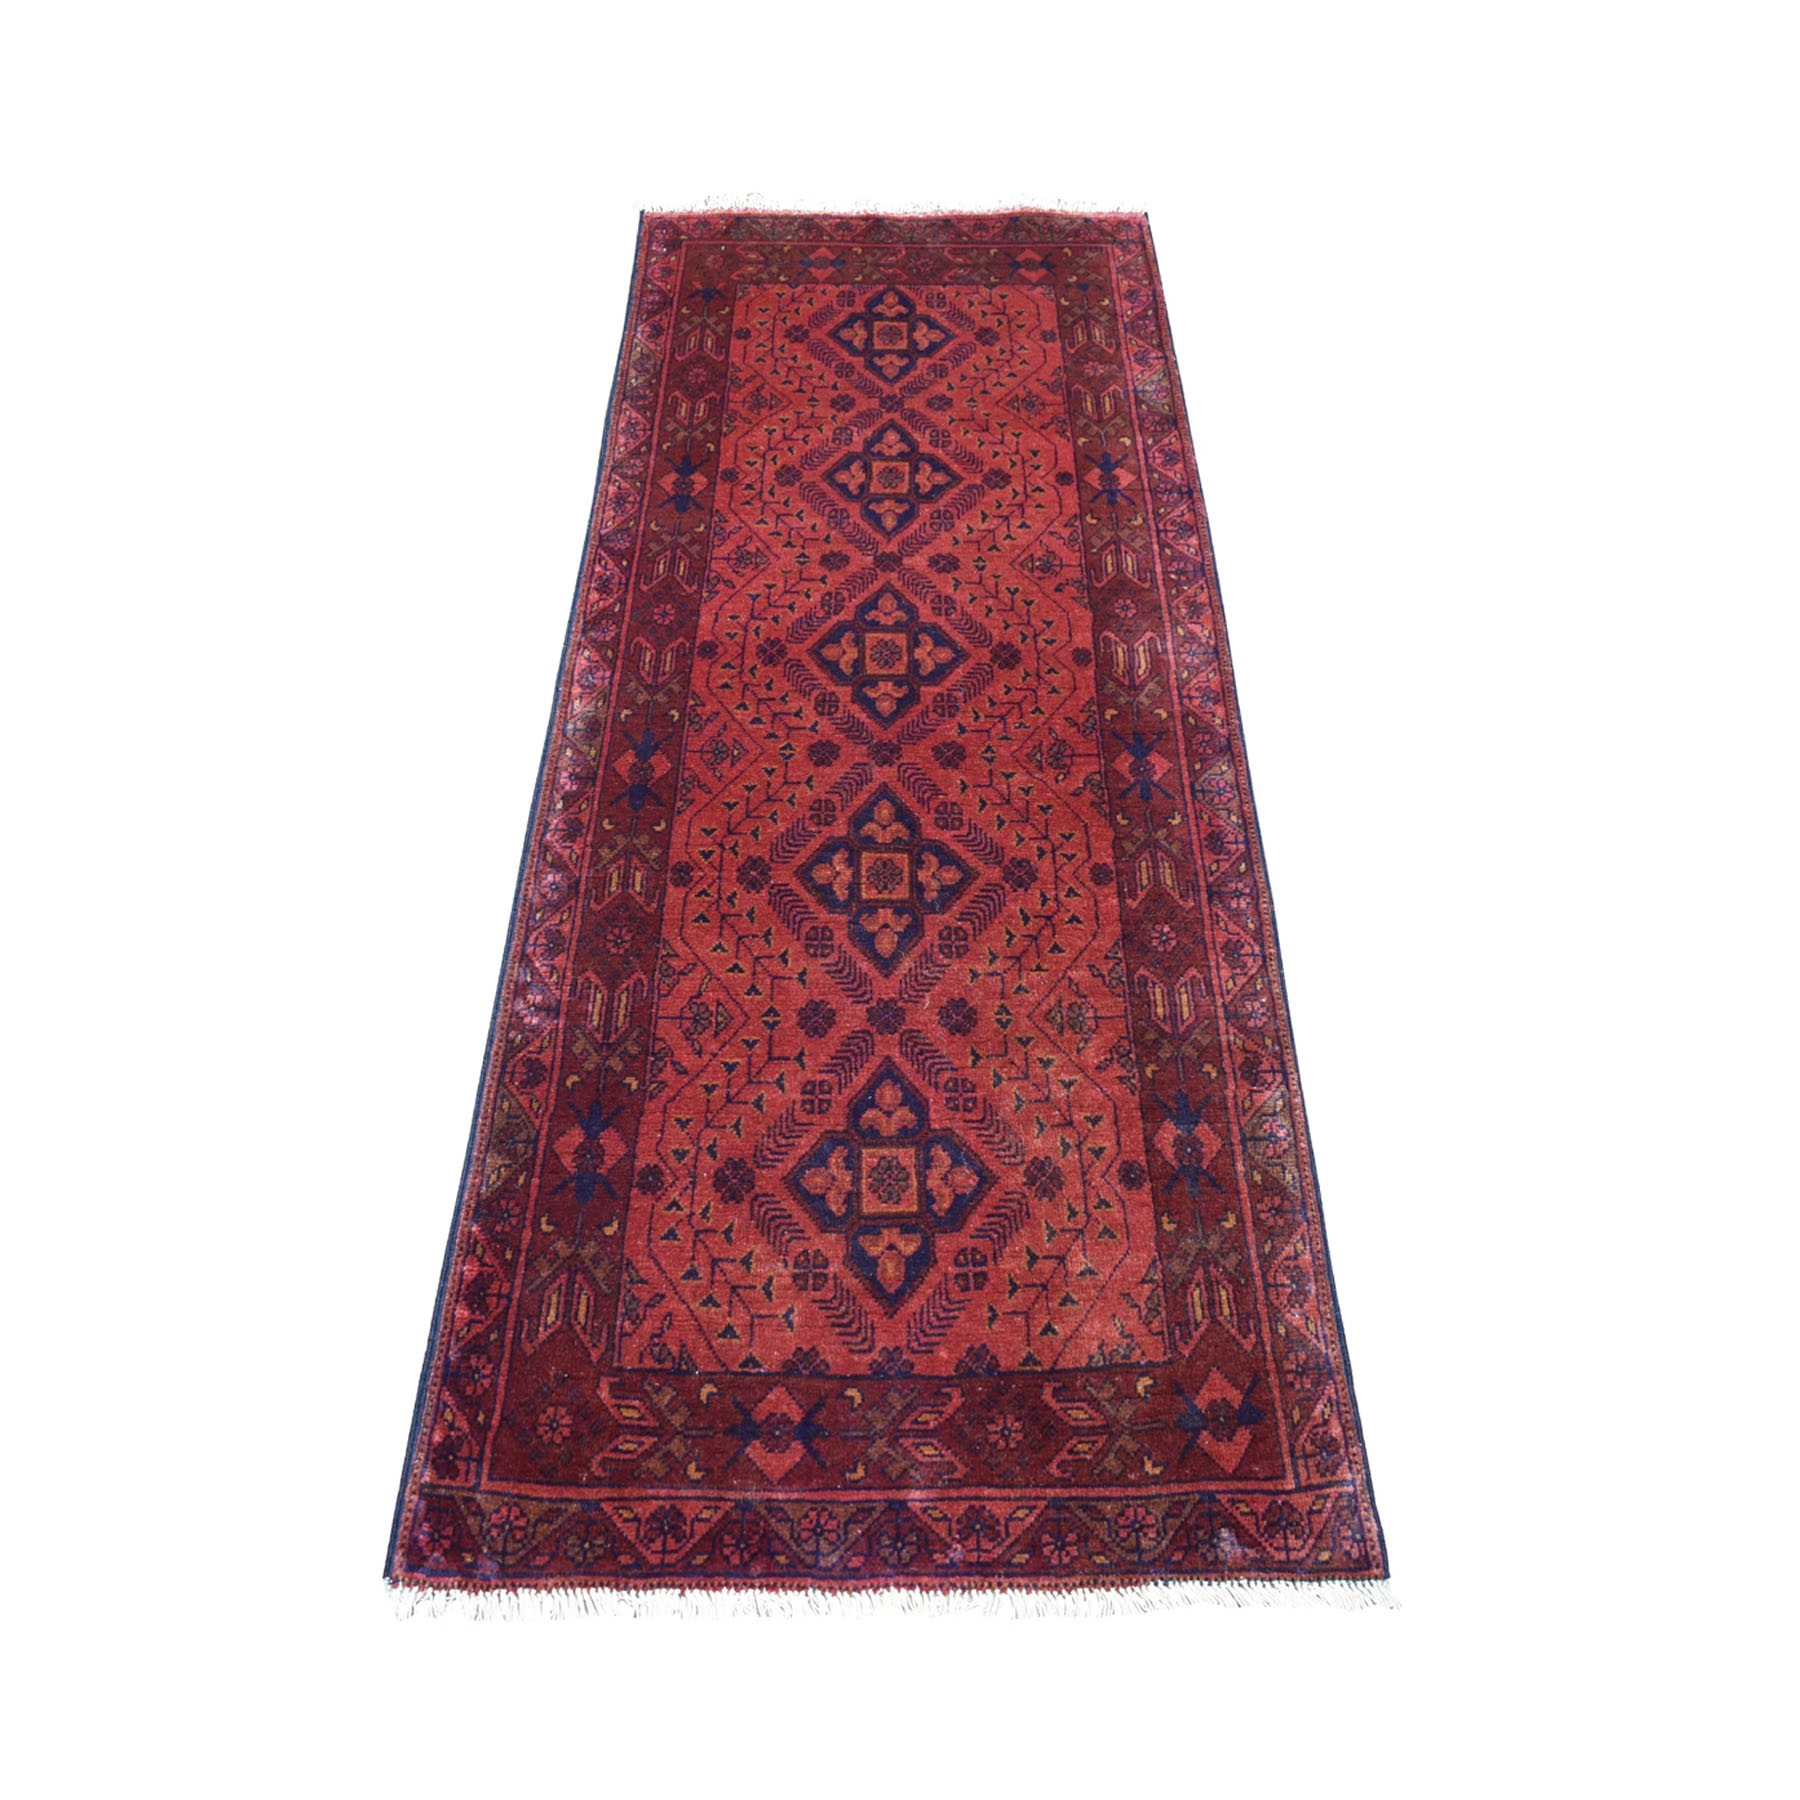 "2'6""x6'4"" Deep and Saturated Red Geometric Afghan Andkhoy Runner Pure Wool Hand Knotted Oriental Rug 53772"